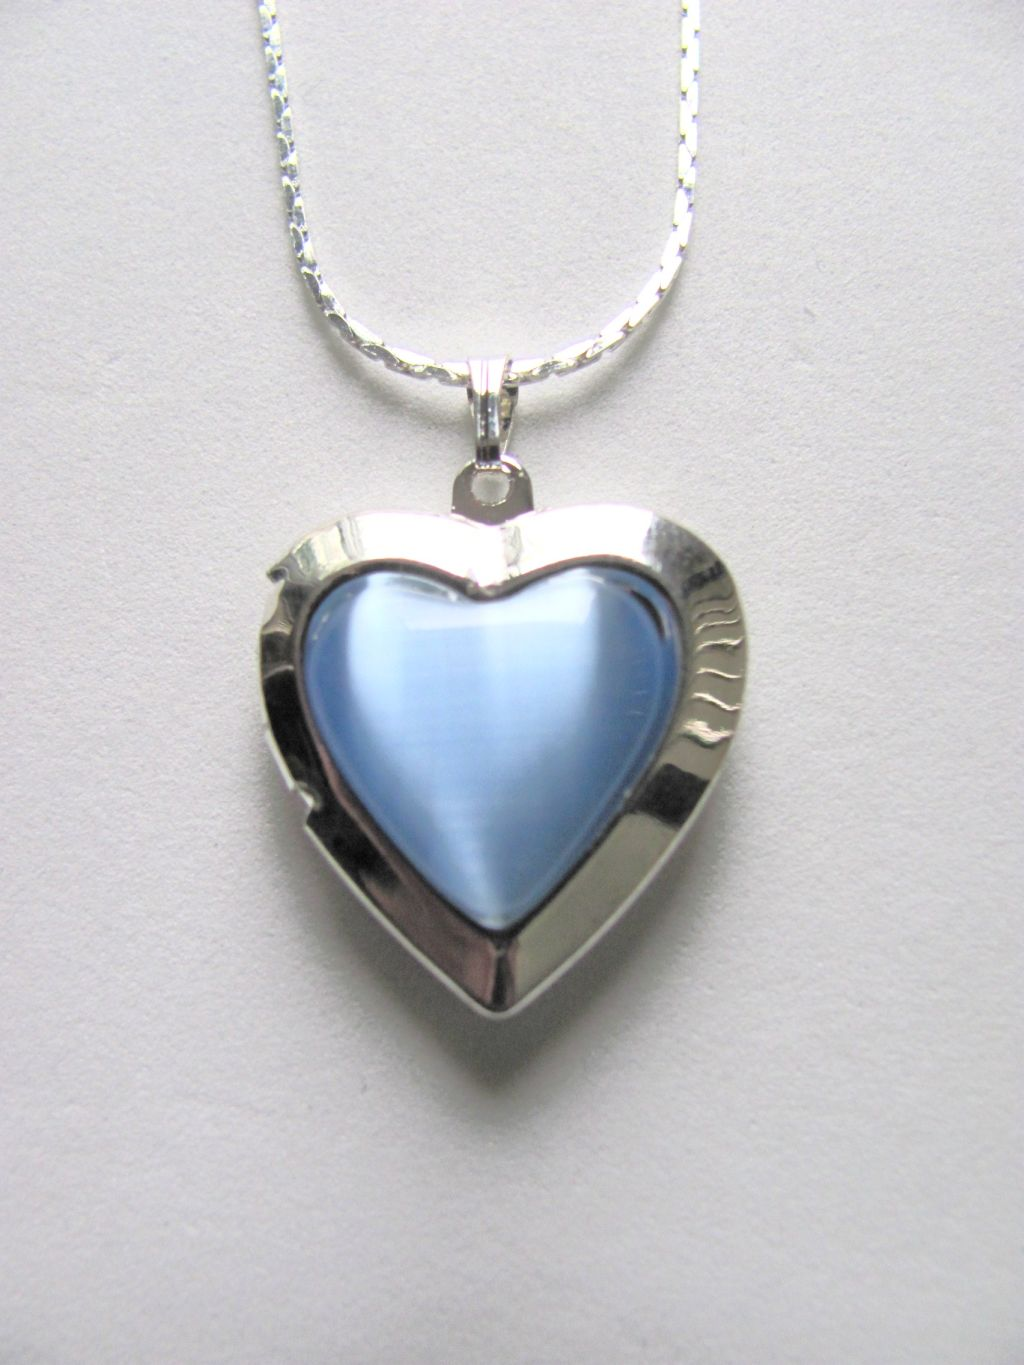 Sky Blue Heart Locket Photo Pendant Necklace, Silver Tone